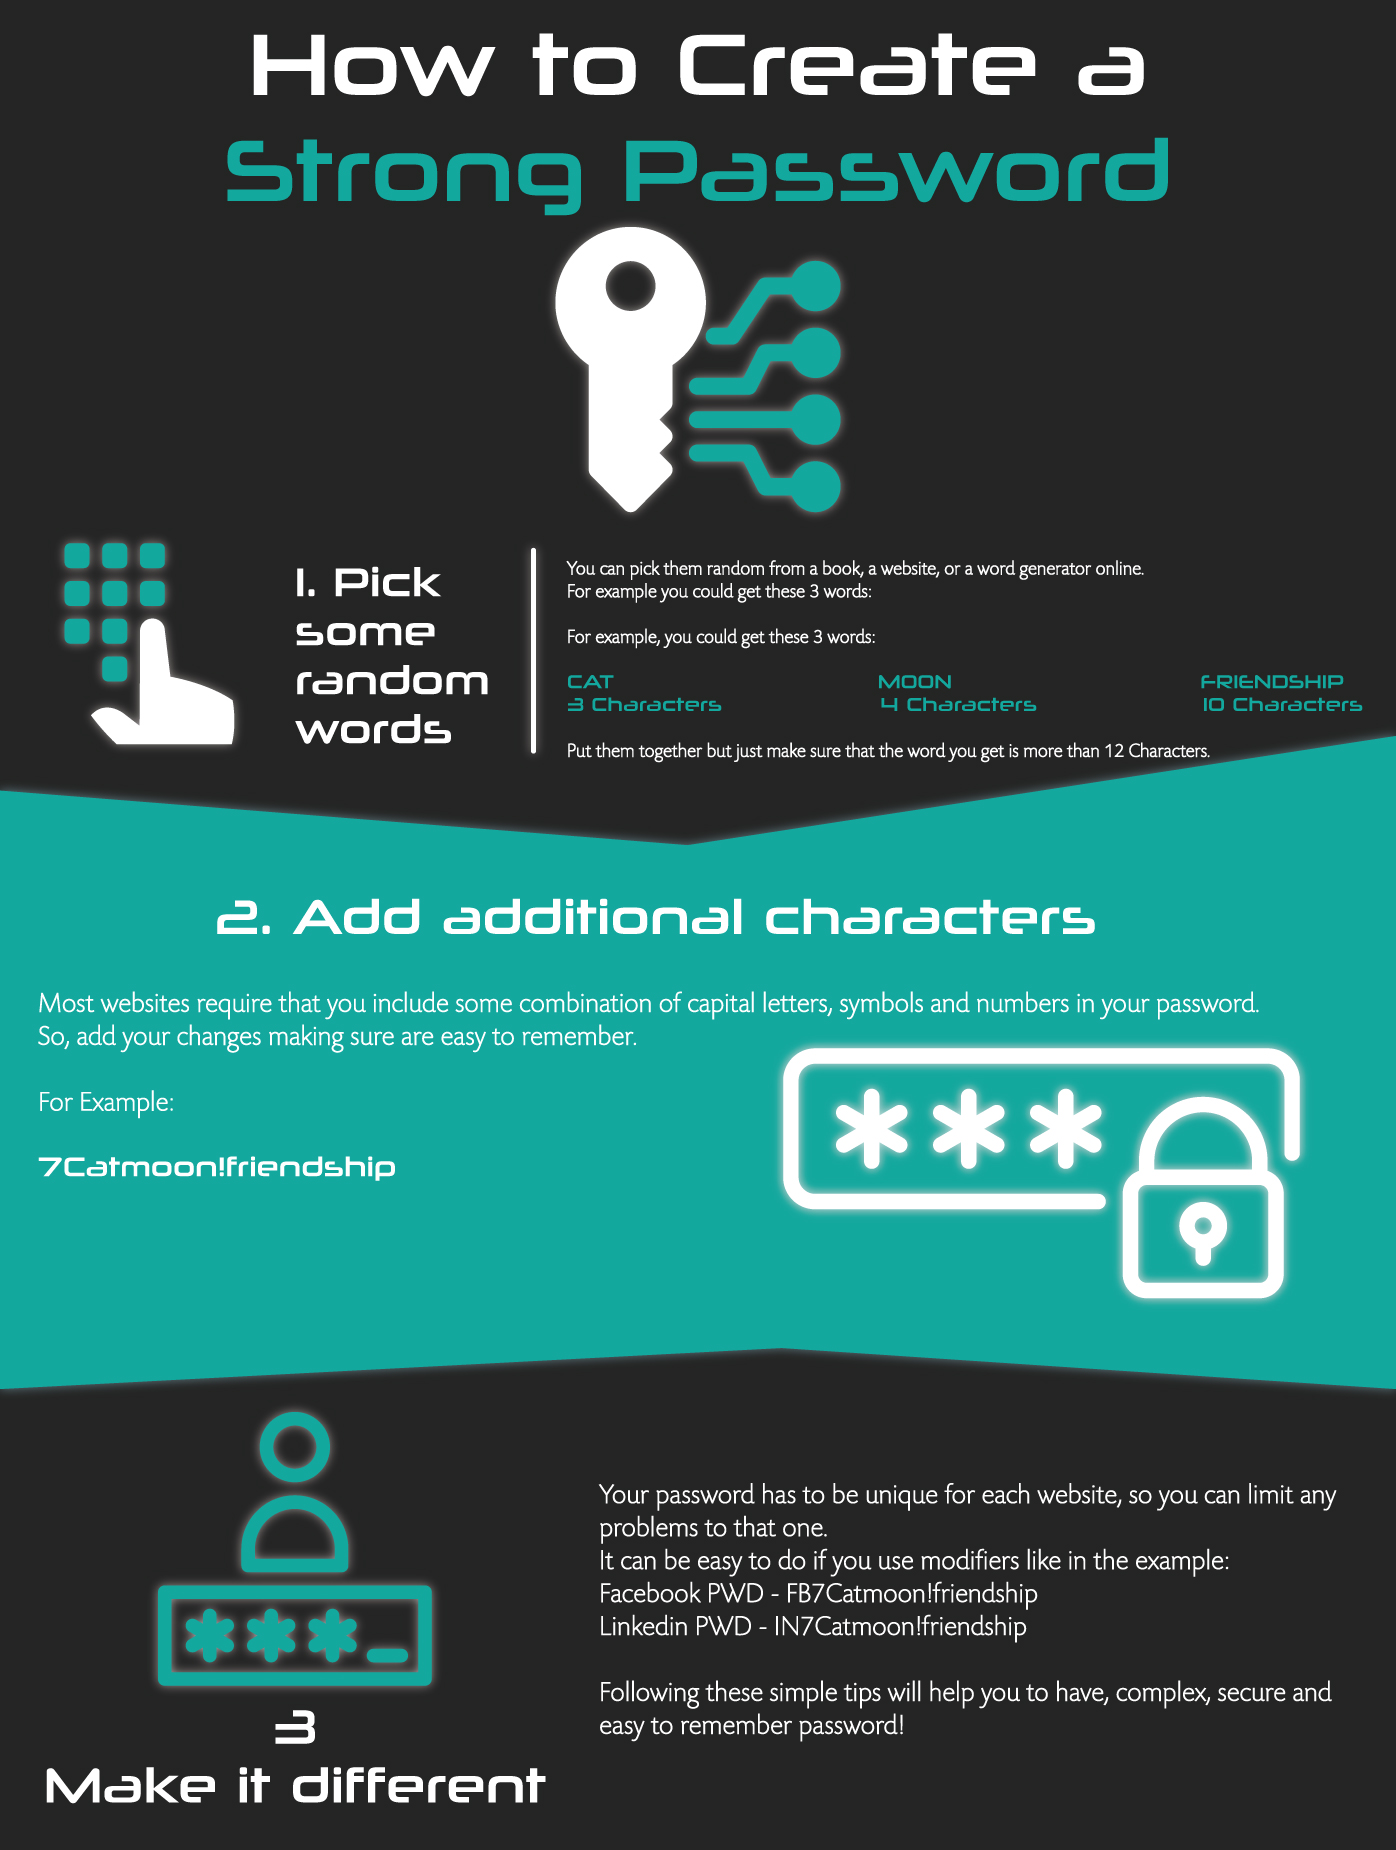 Secrets for a Strong Password